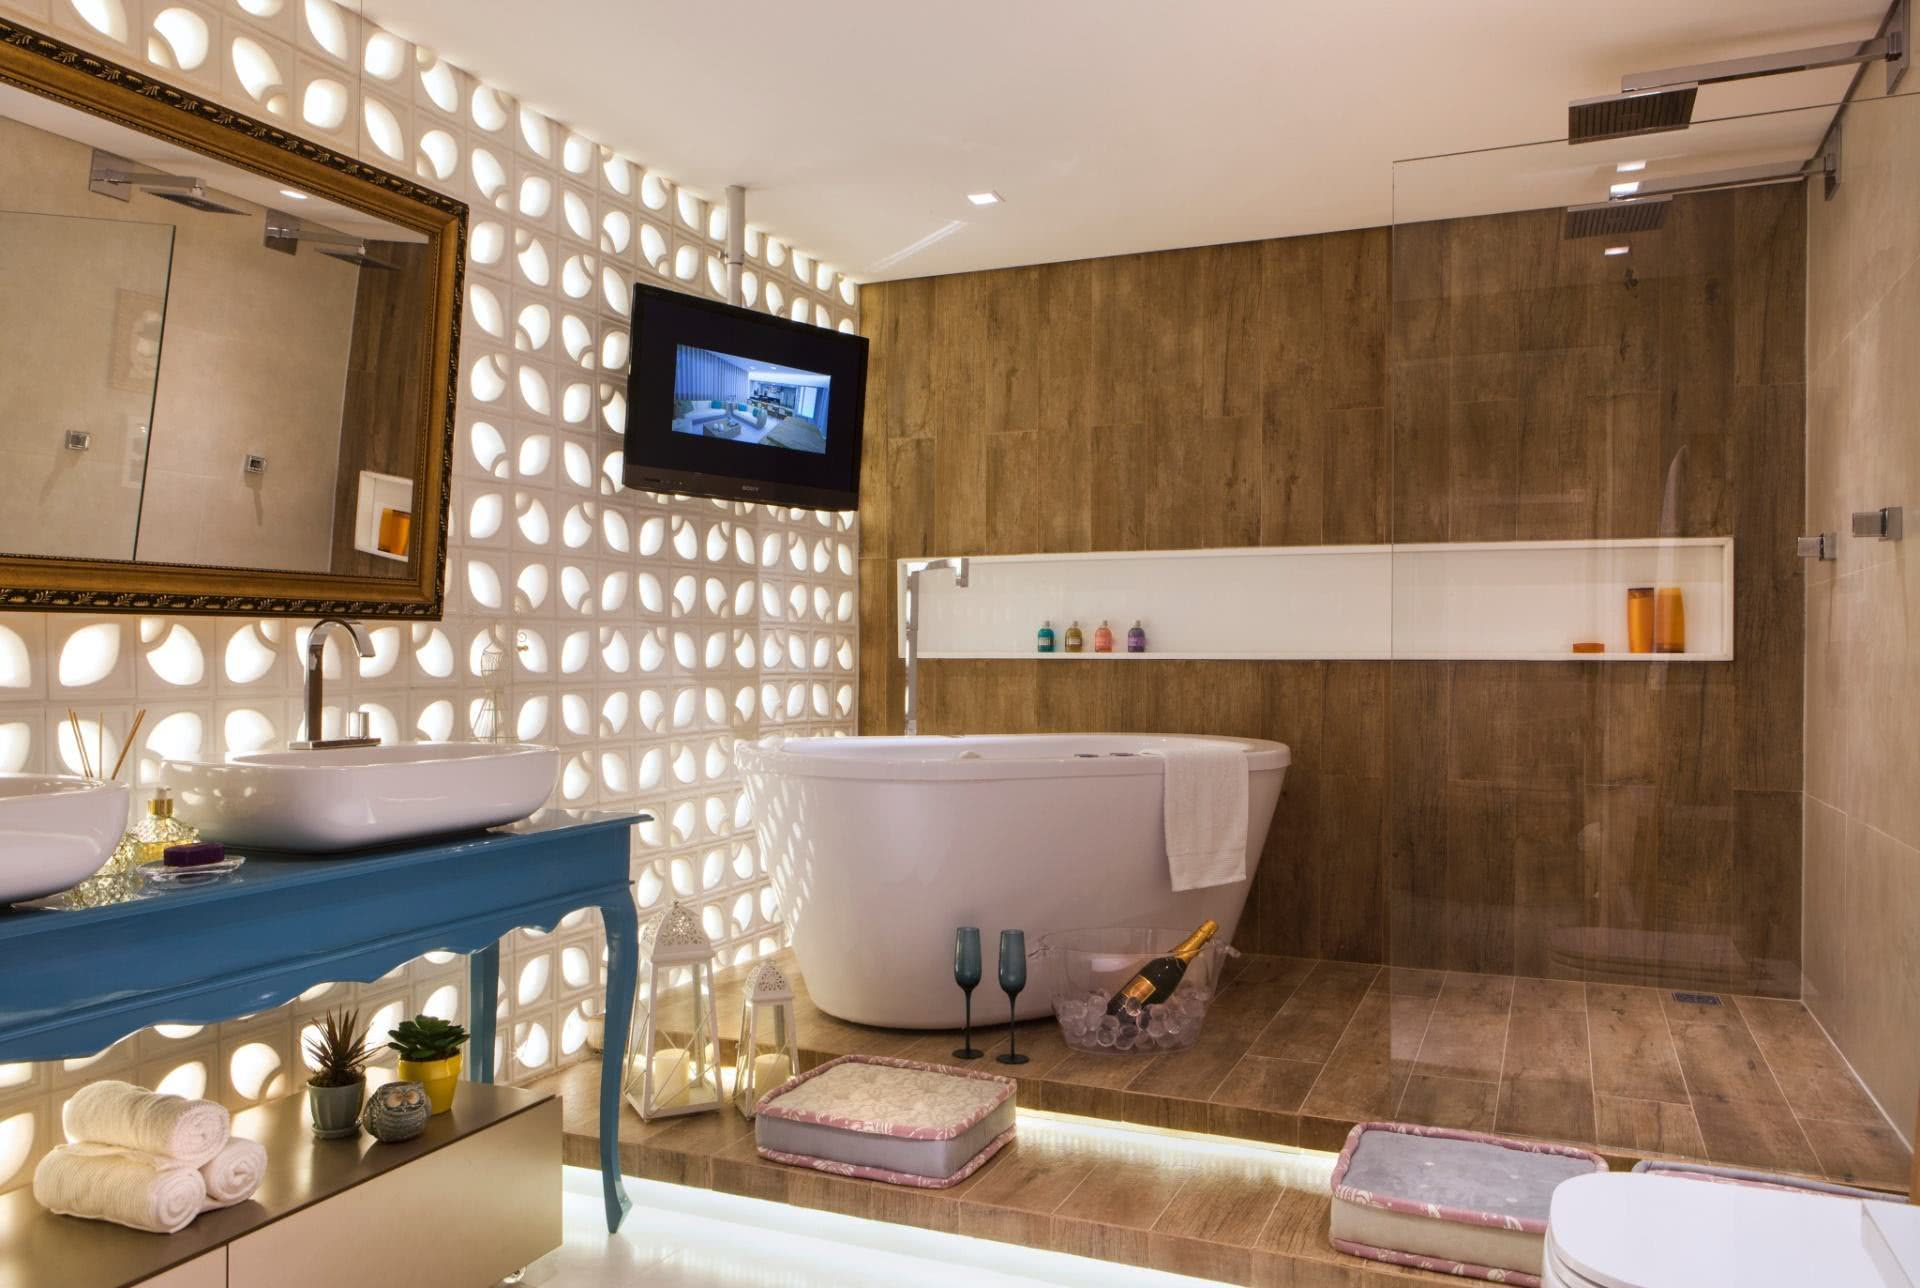 Modern and elegant bathroom for those who like to relax